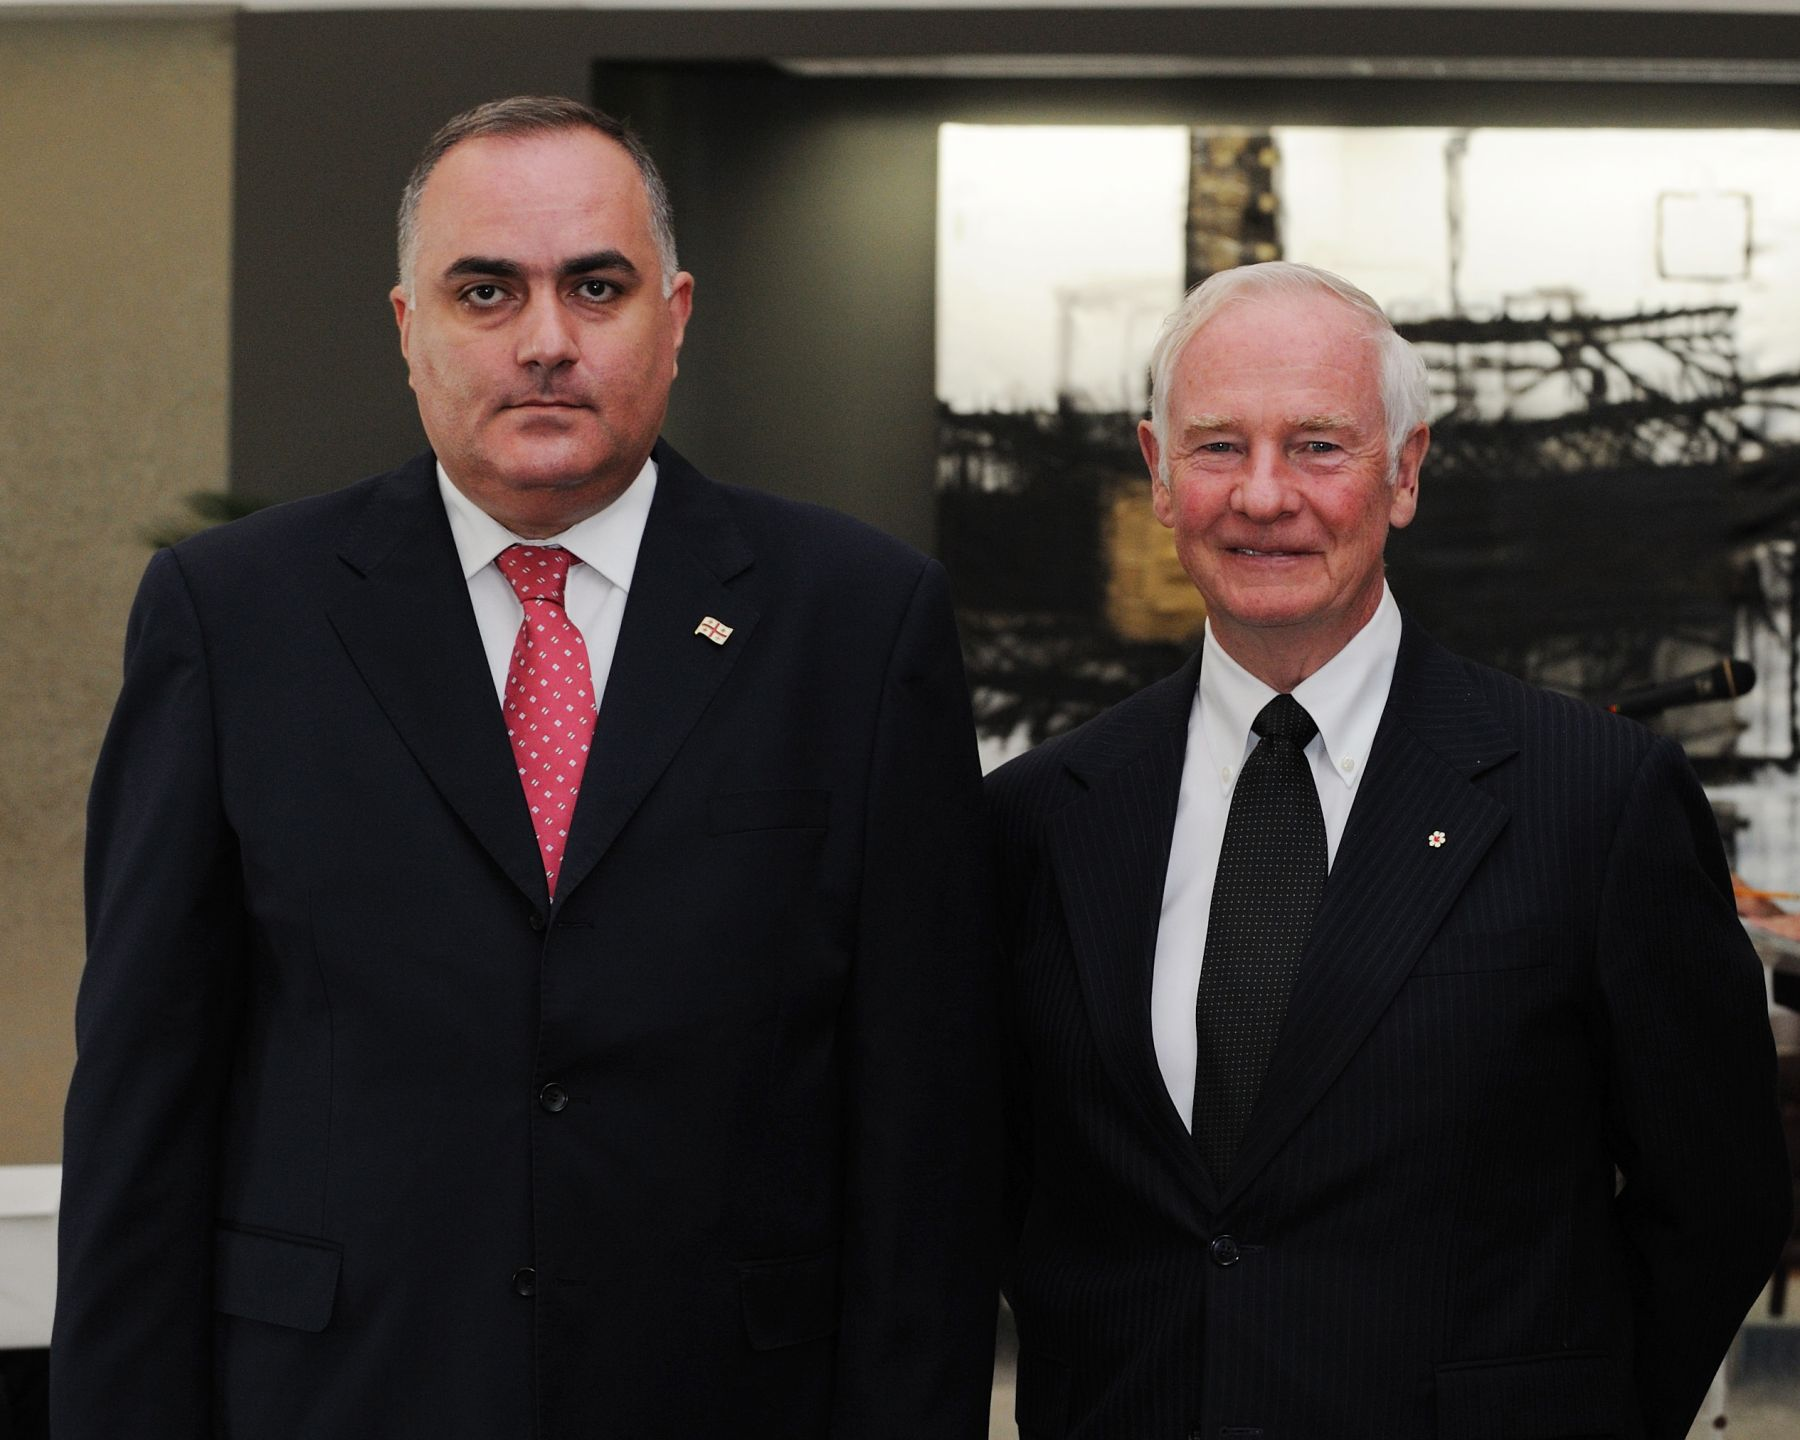 The Governor General received the credentials of His Excellency Levan Metreveli